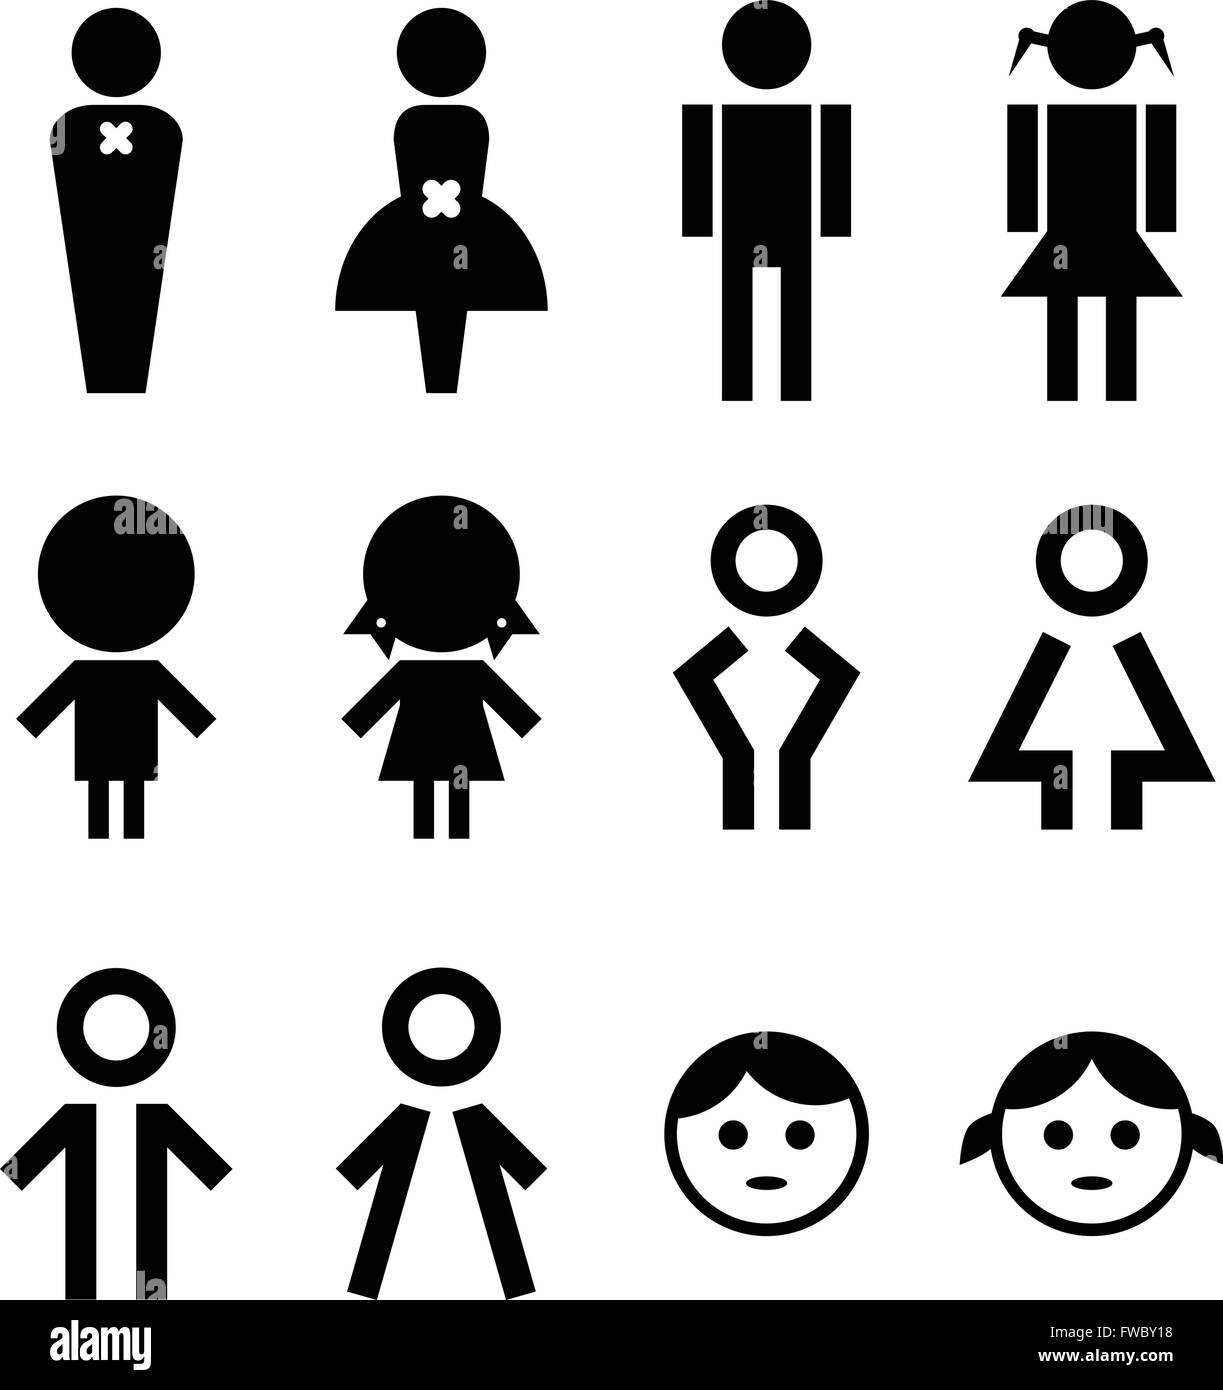 Man and woman sign - Stock Image